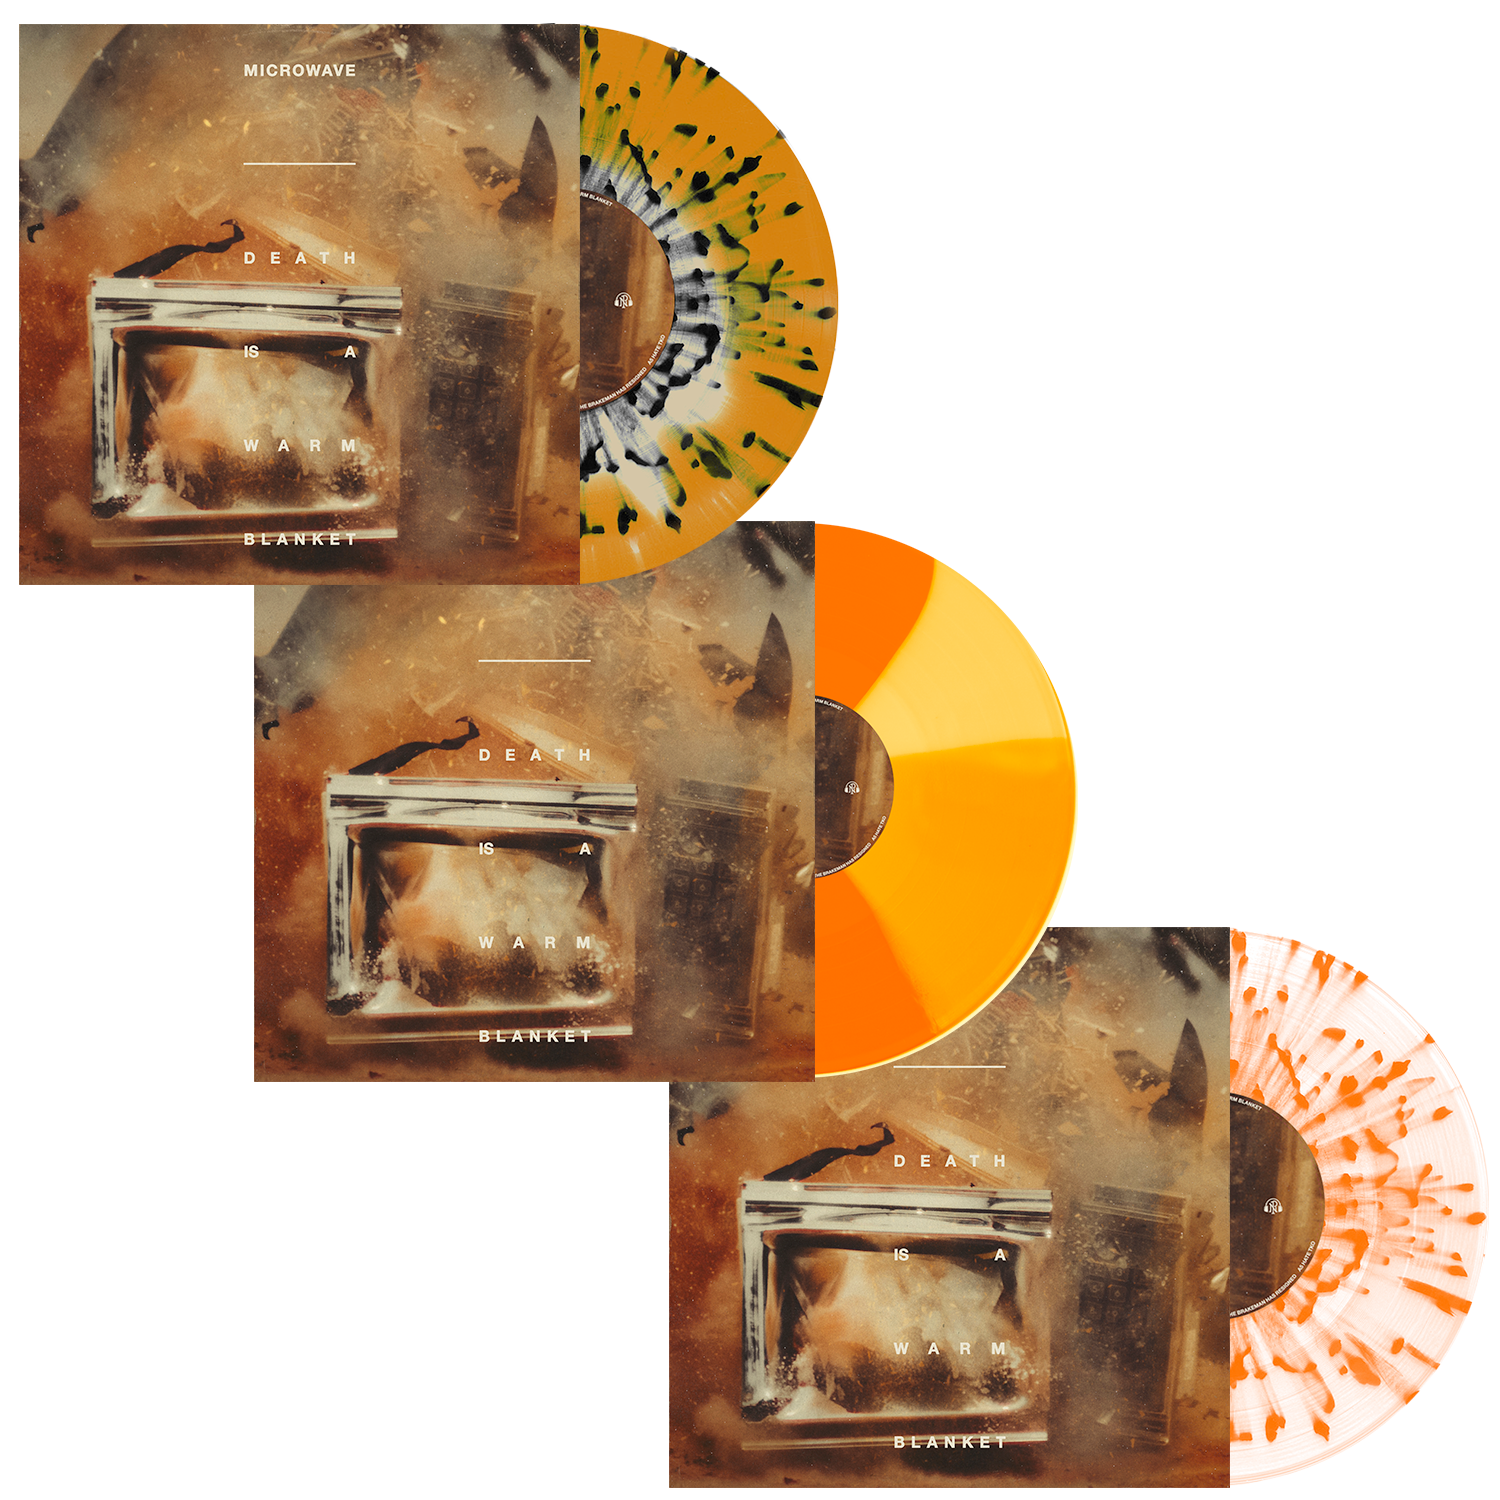 Microwave 'Death Is A Warm Blanket' LP Bundle